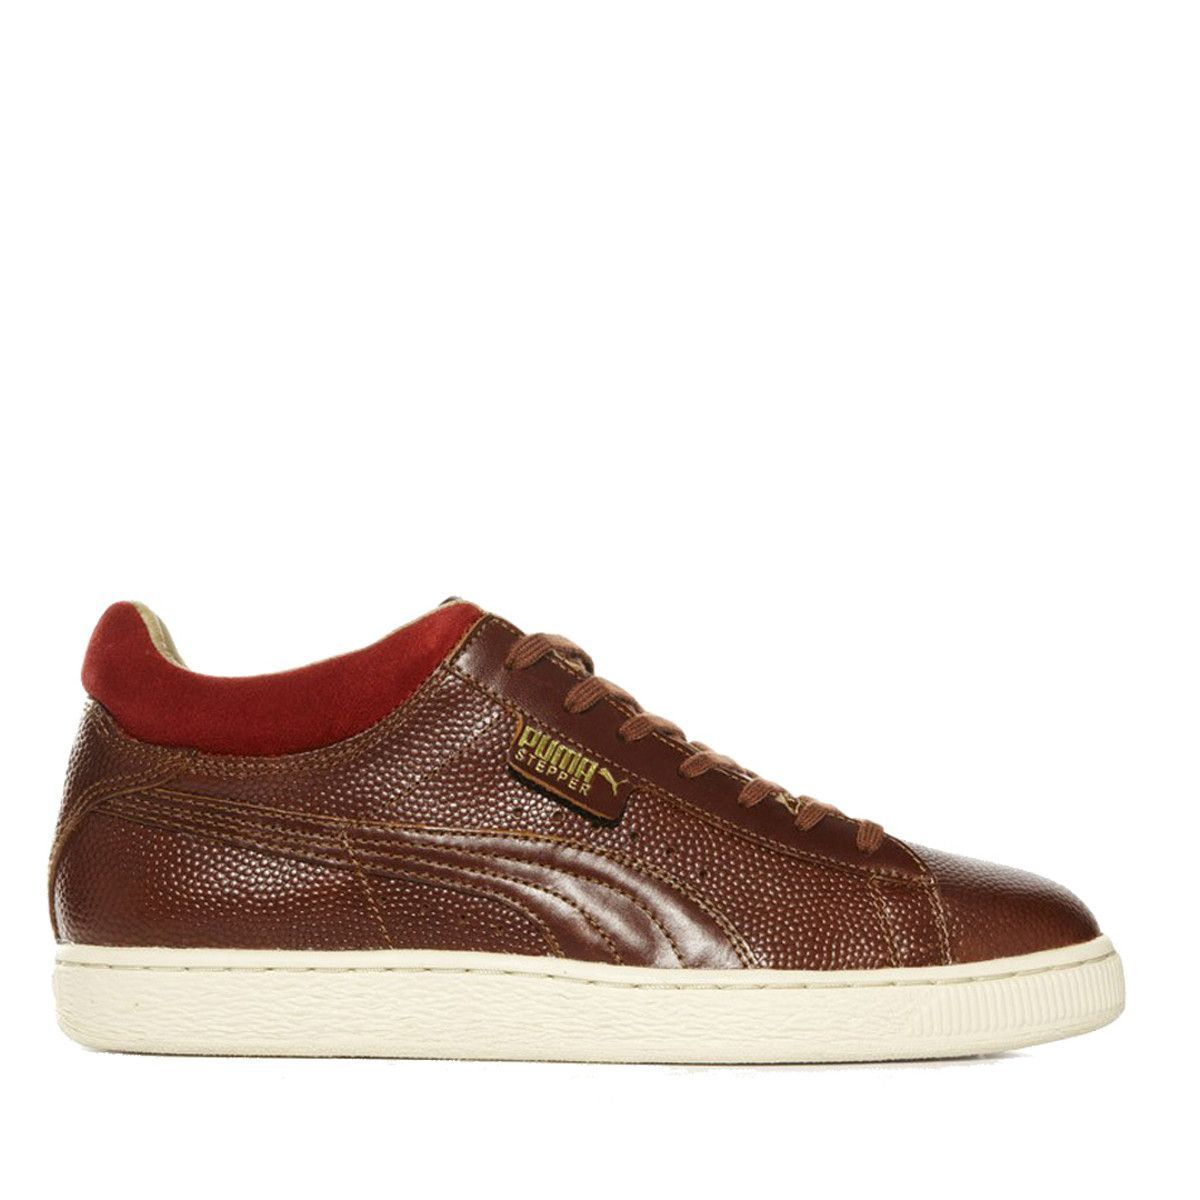 Puma Stepper Classic Luxe Pumas Saturn Niedrig top Sneaker   Pumas Luxe and Products 6620ea